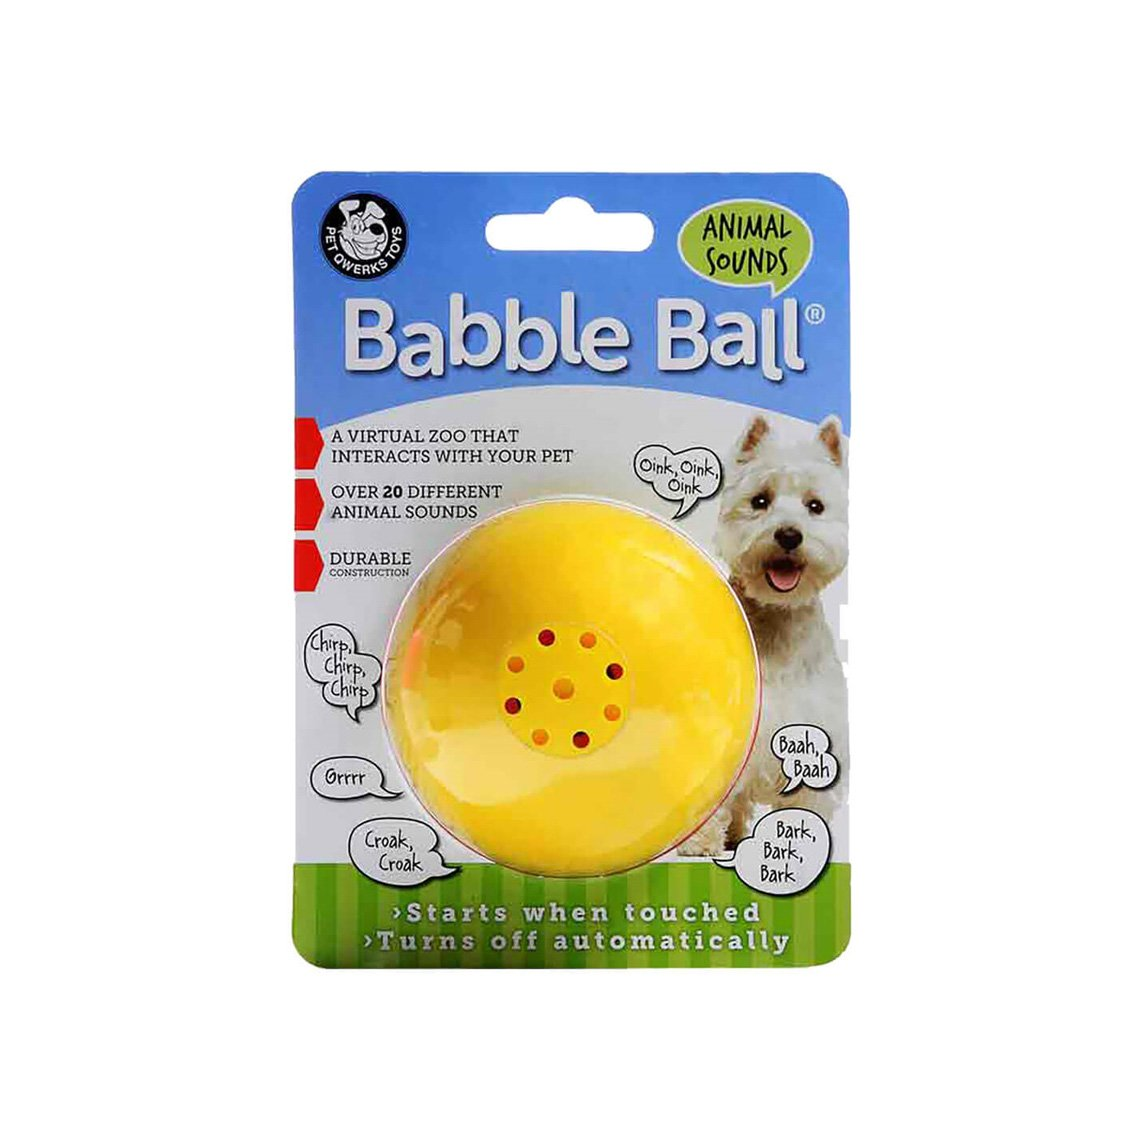 Wisecracks and Makes Funny Sounds When Touched Pet Qwerks Talking Babble Ball Interactive Dog Toy